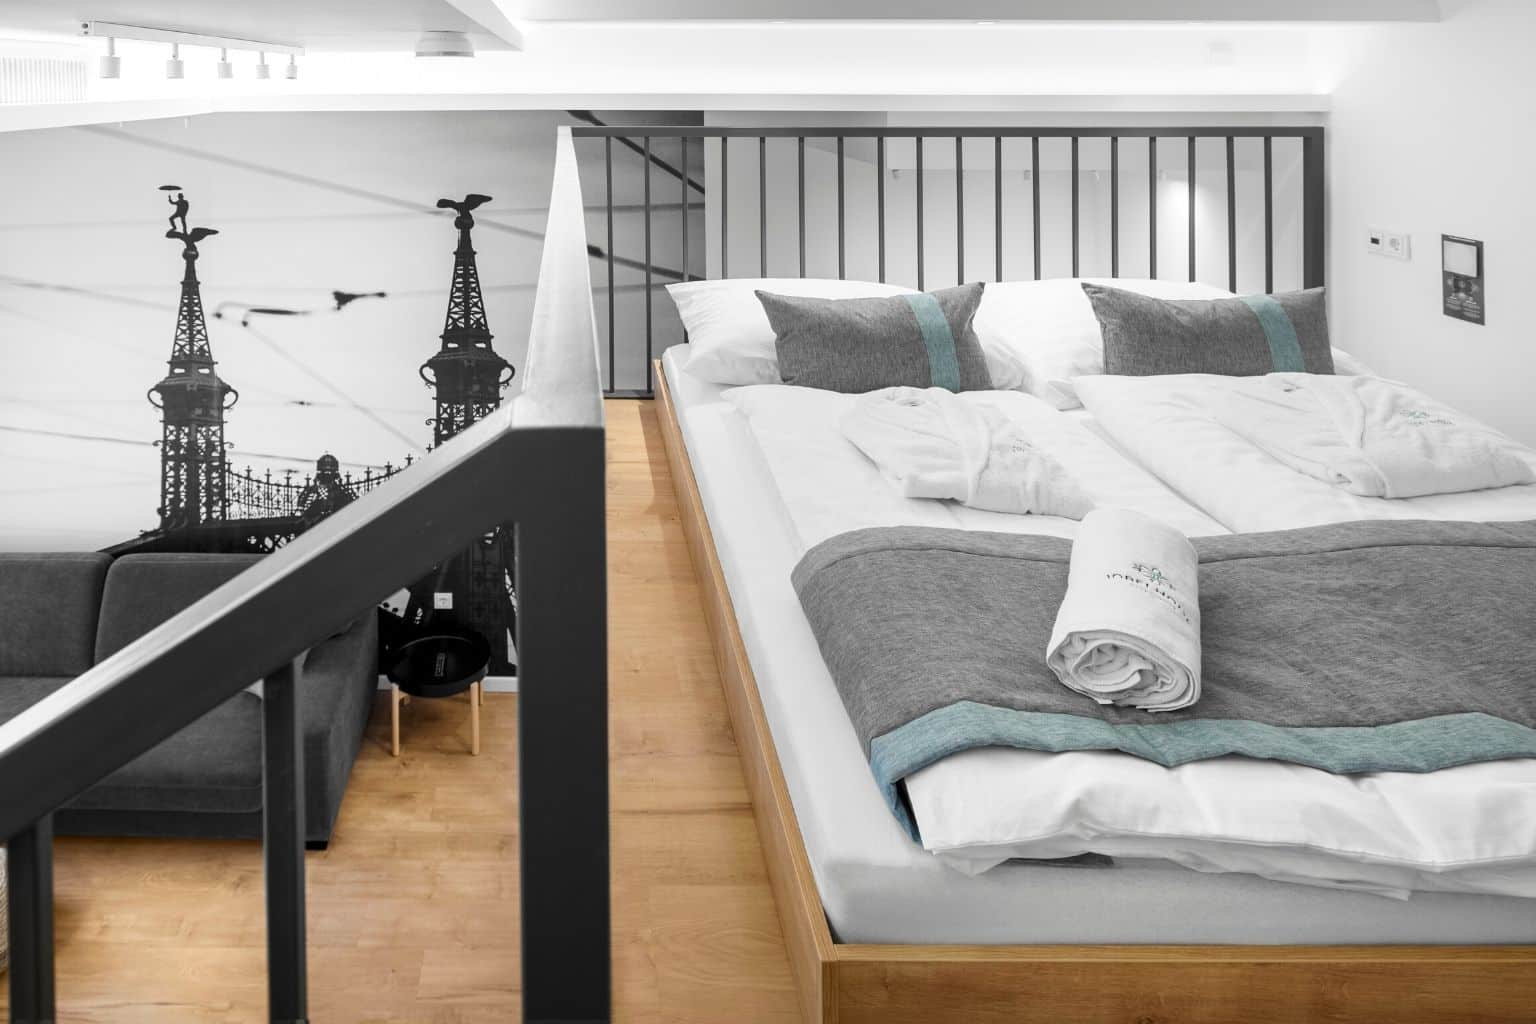 Take a rest after a busy day at Jobelhome's comfy beds